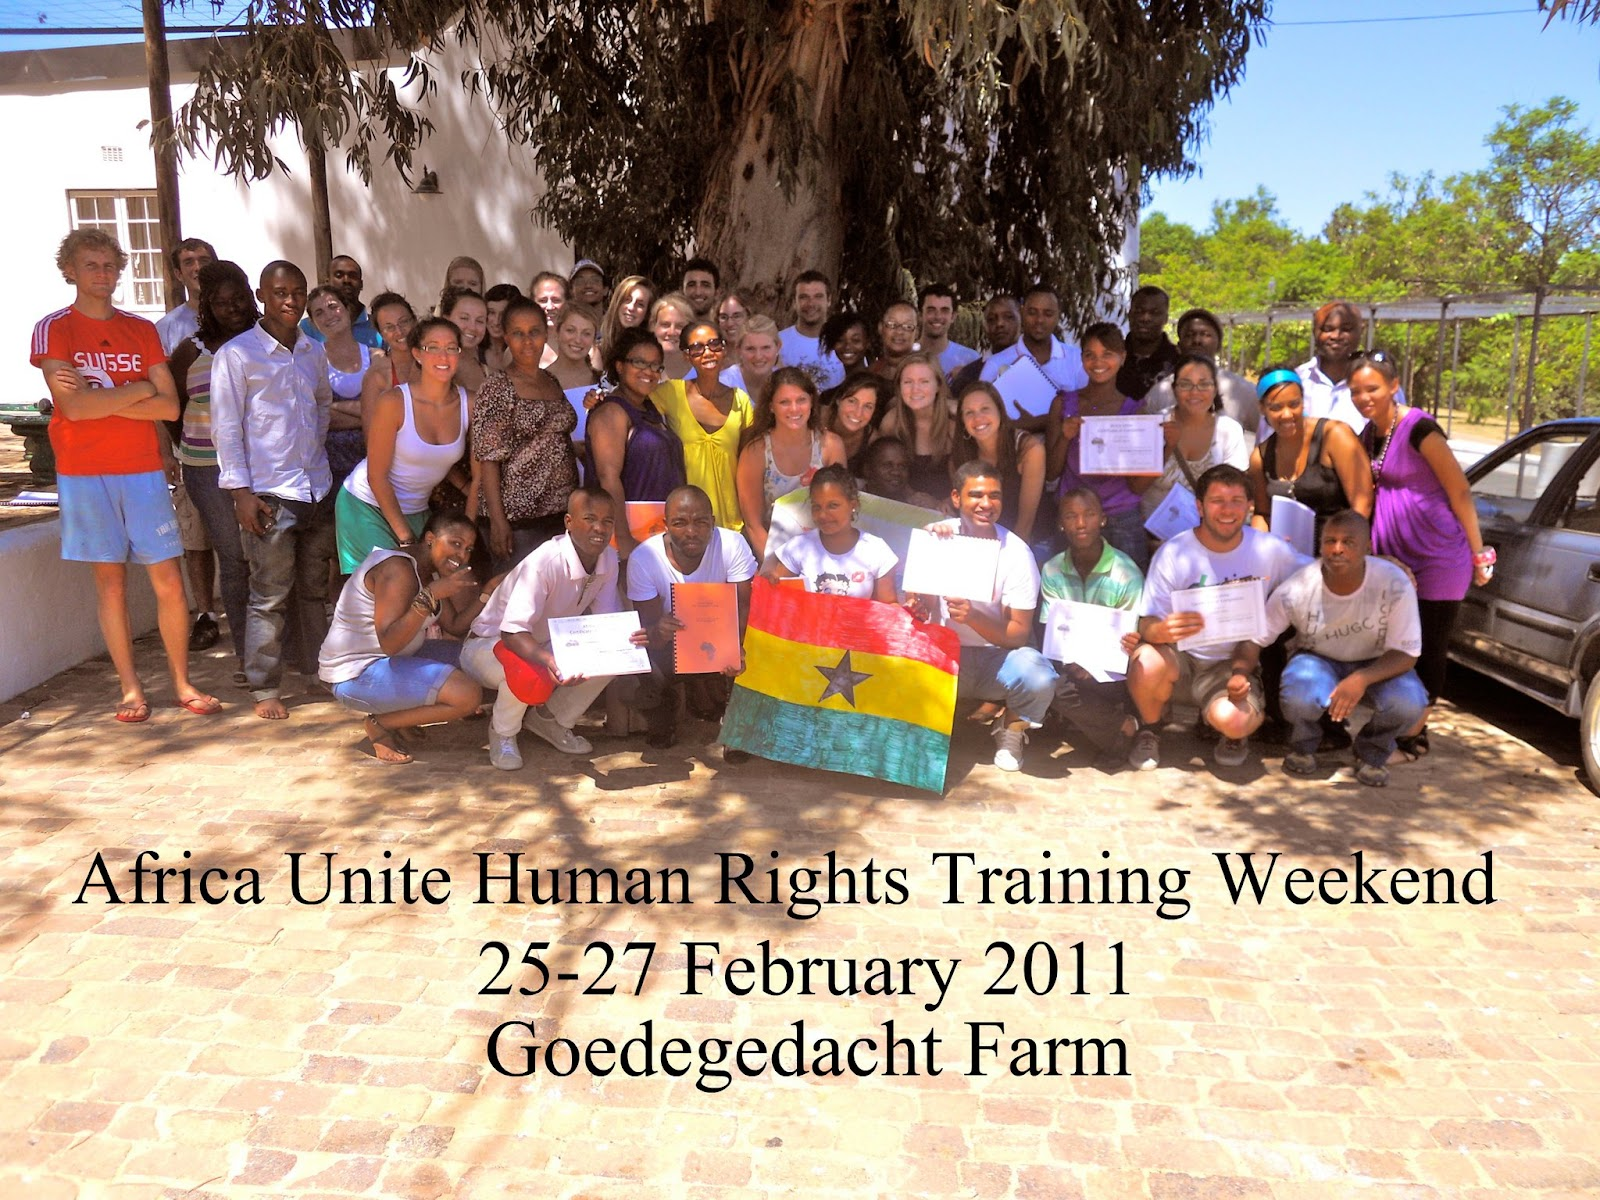 Human RIghts Training Weekend